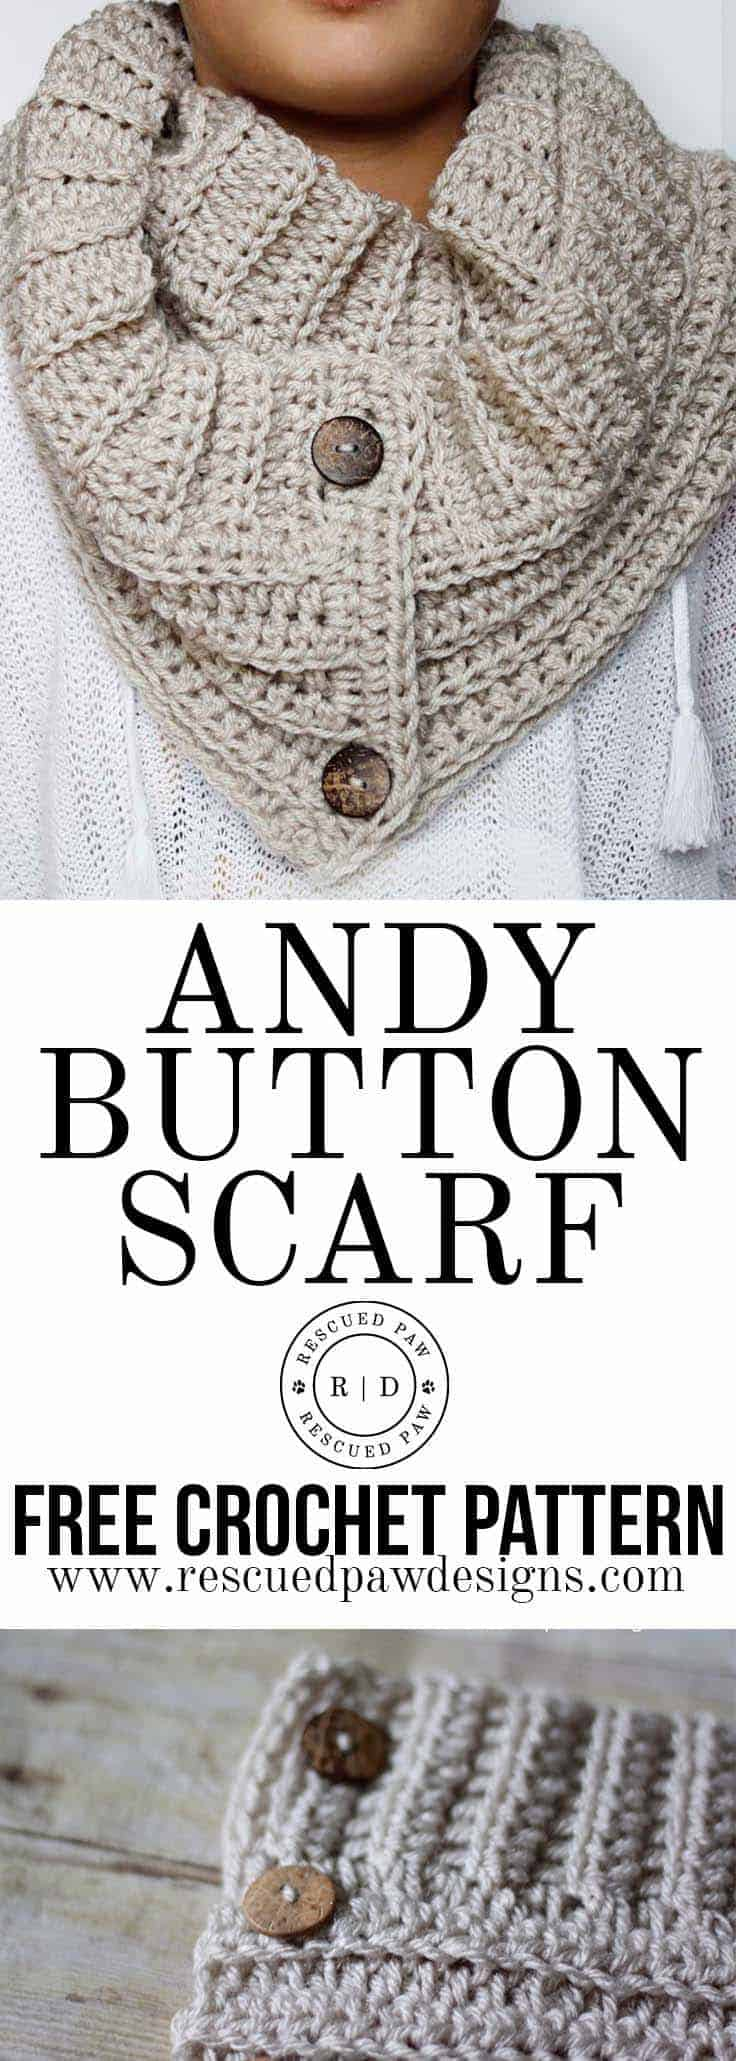 button crochet scarf pattern